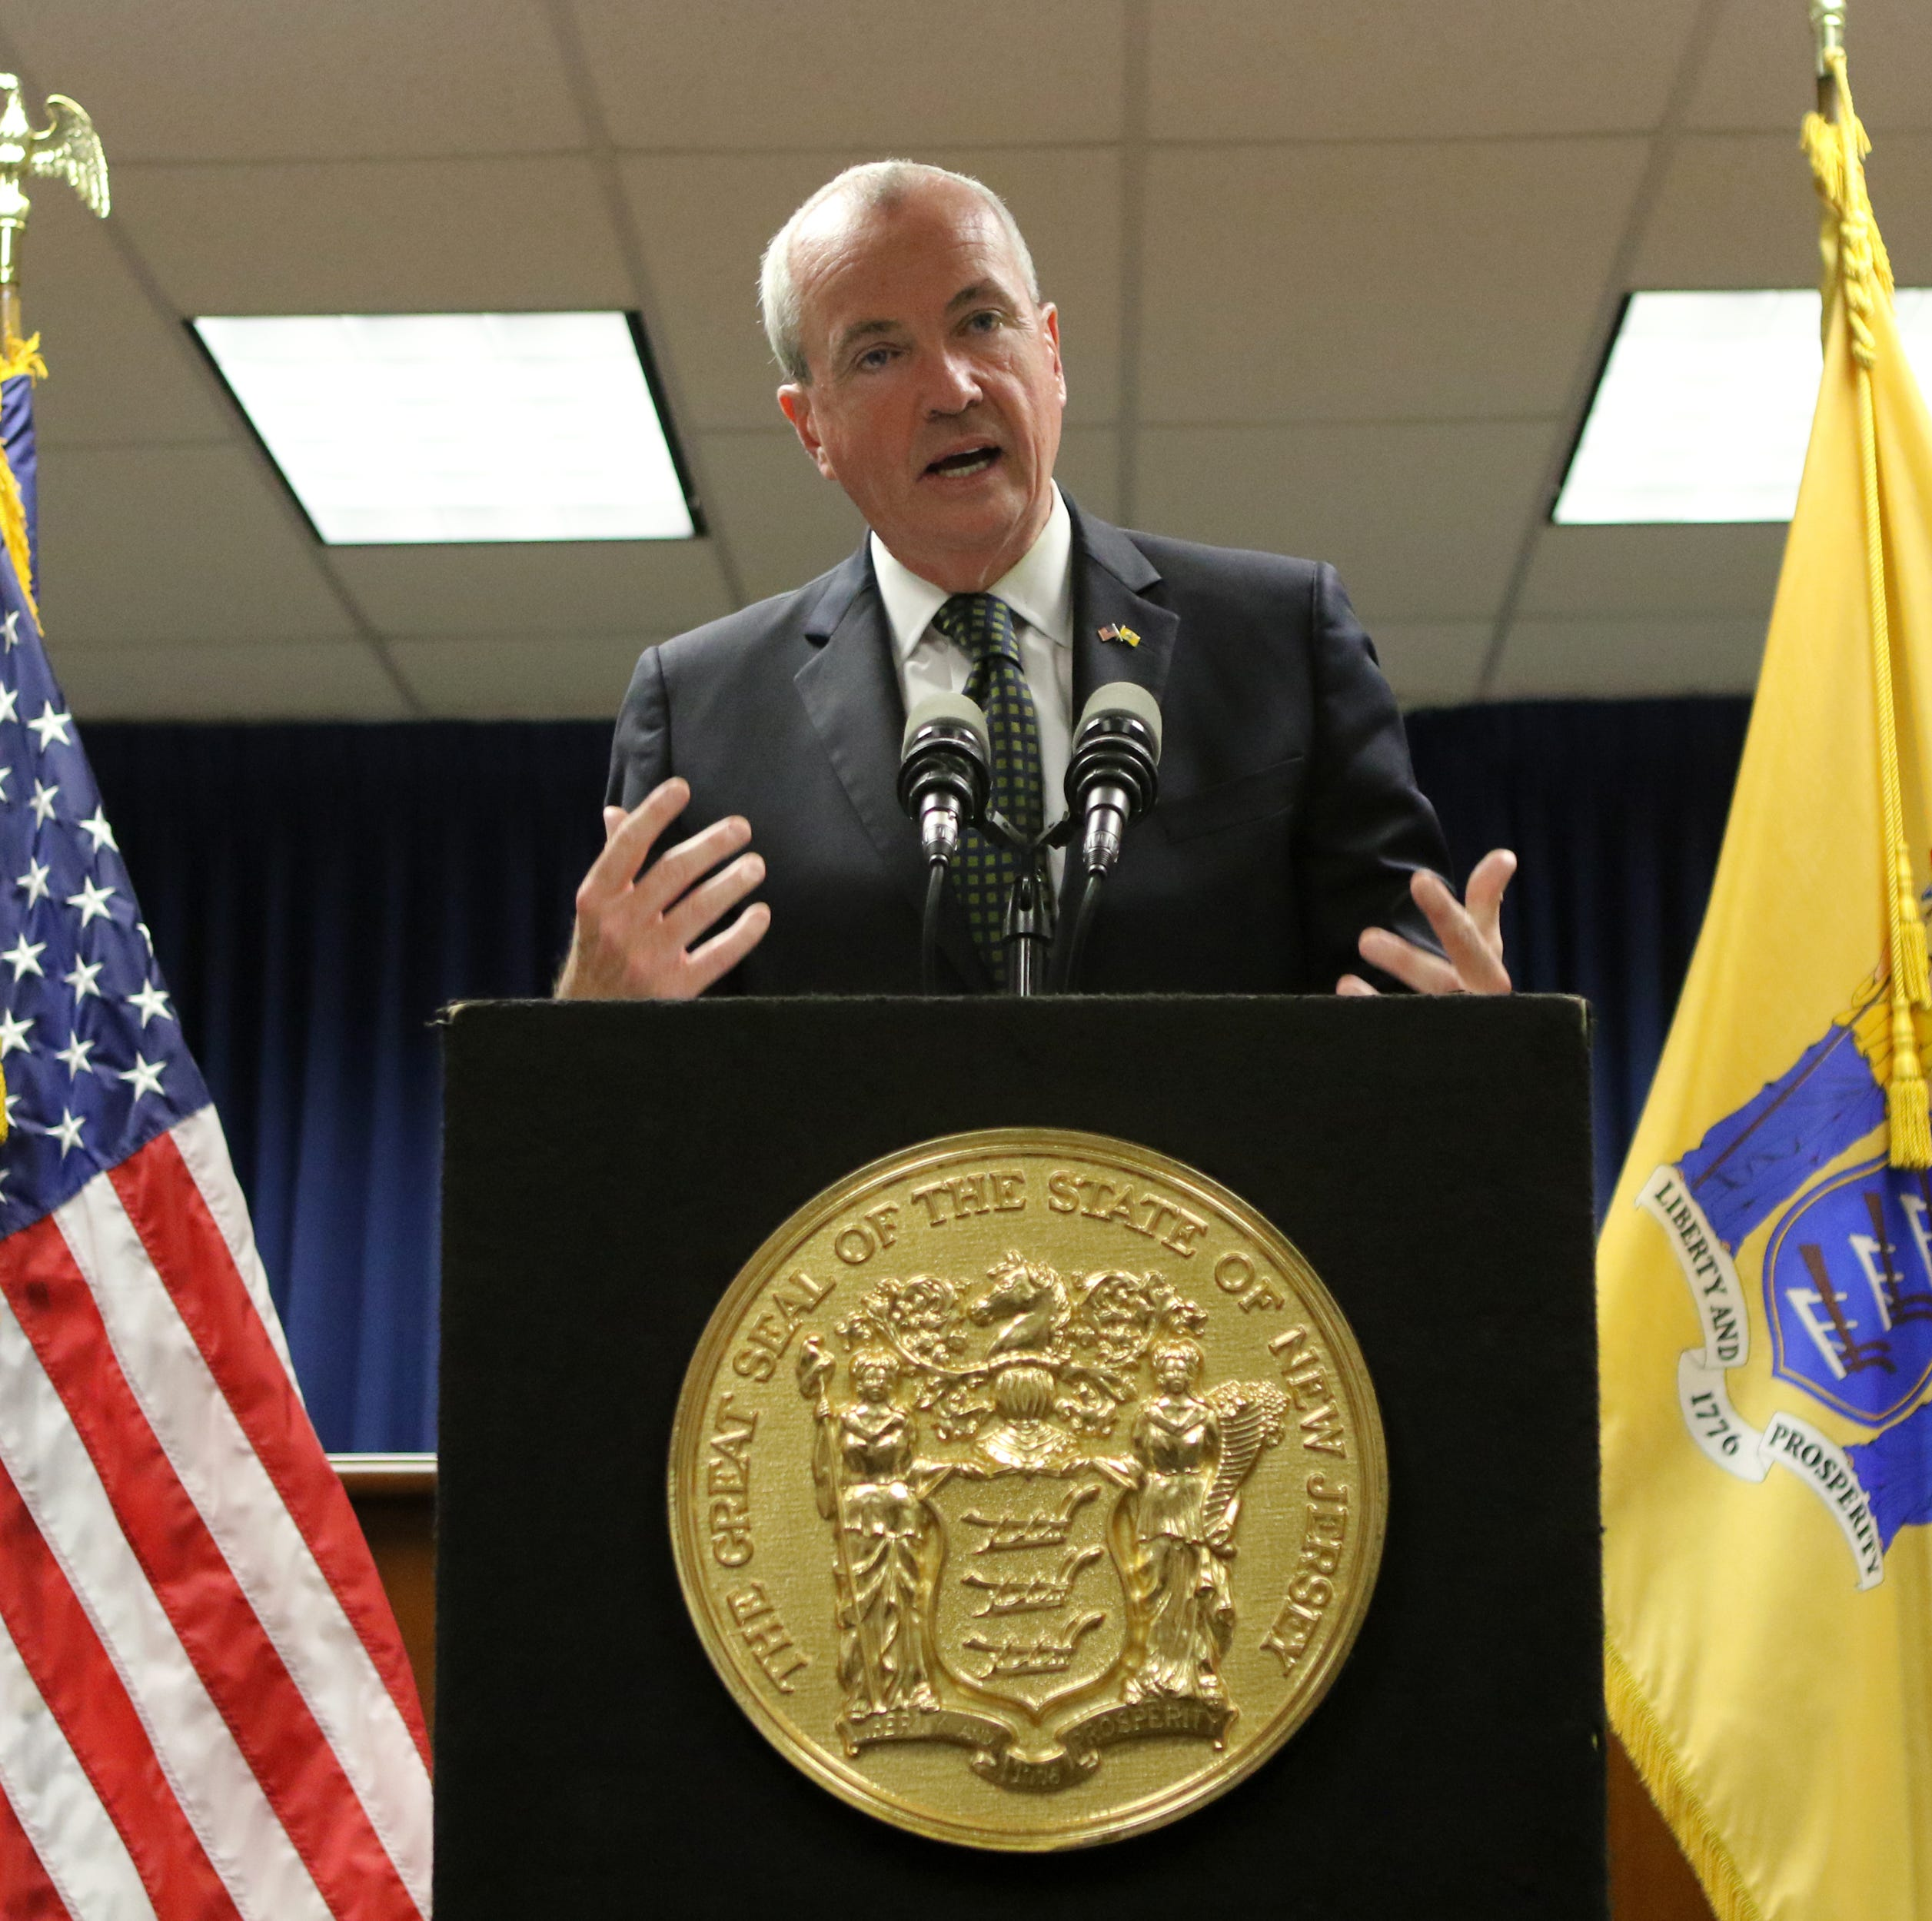 Editorial: A crisis of confidence brewing in Murphy administration